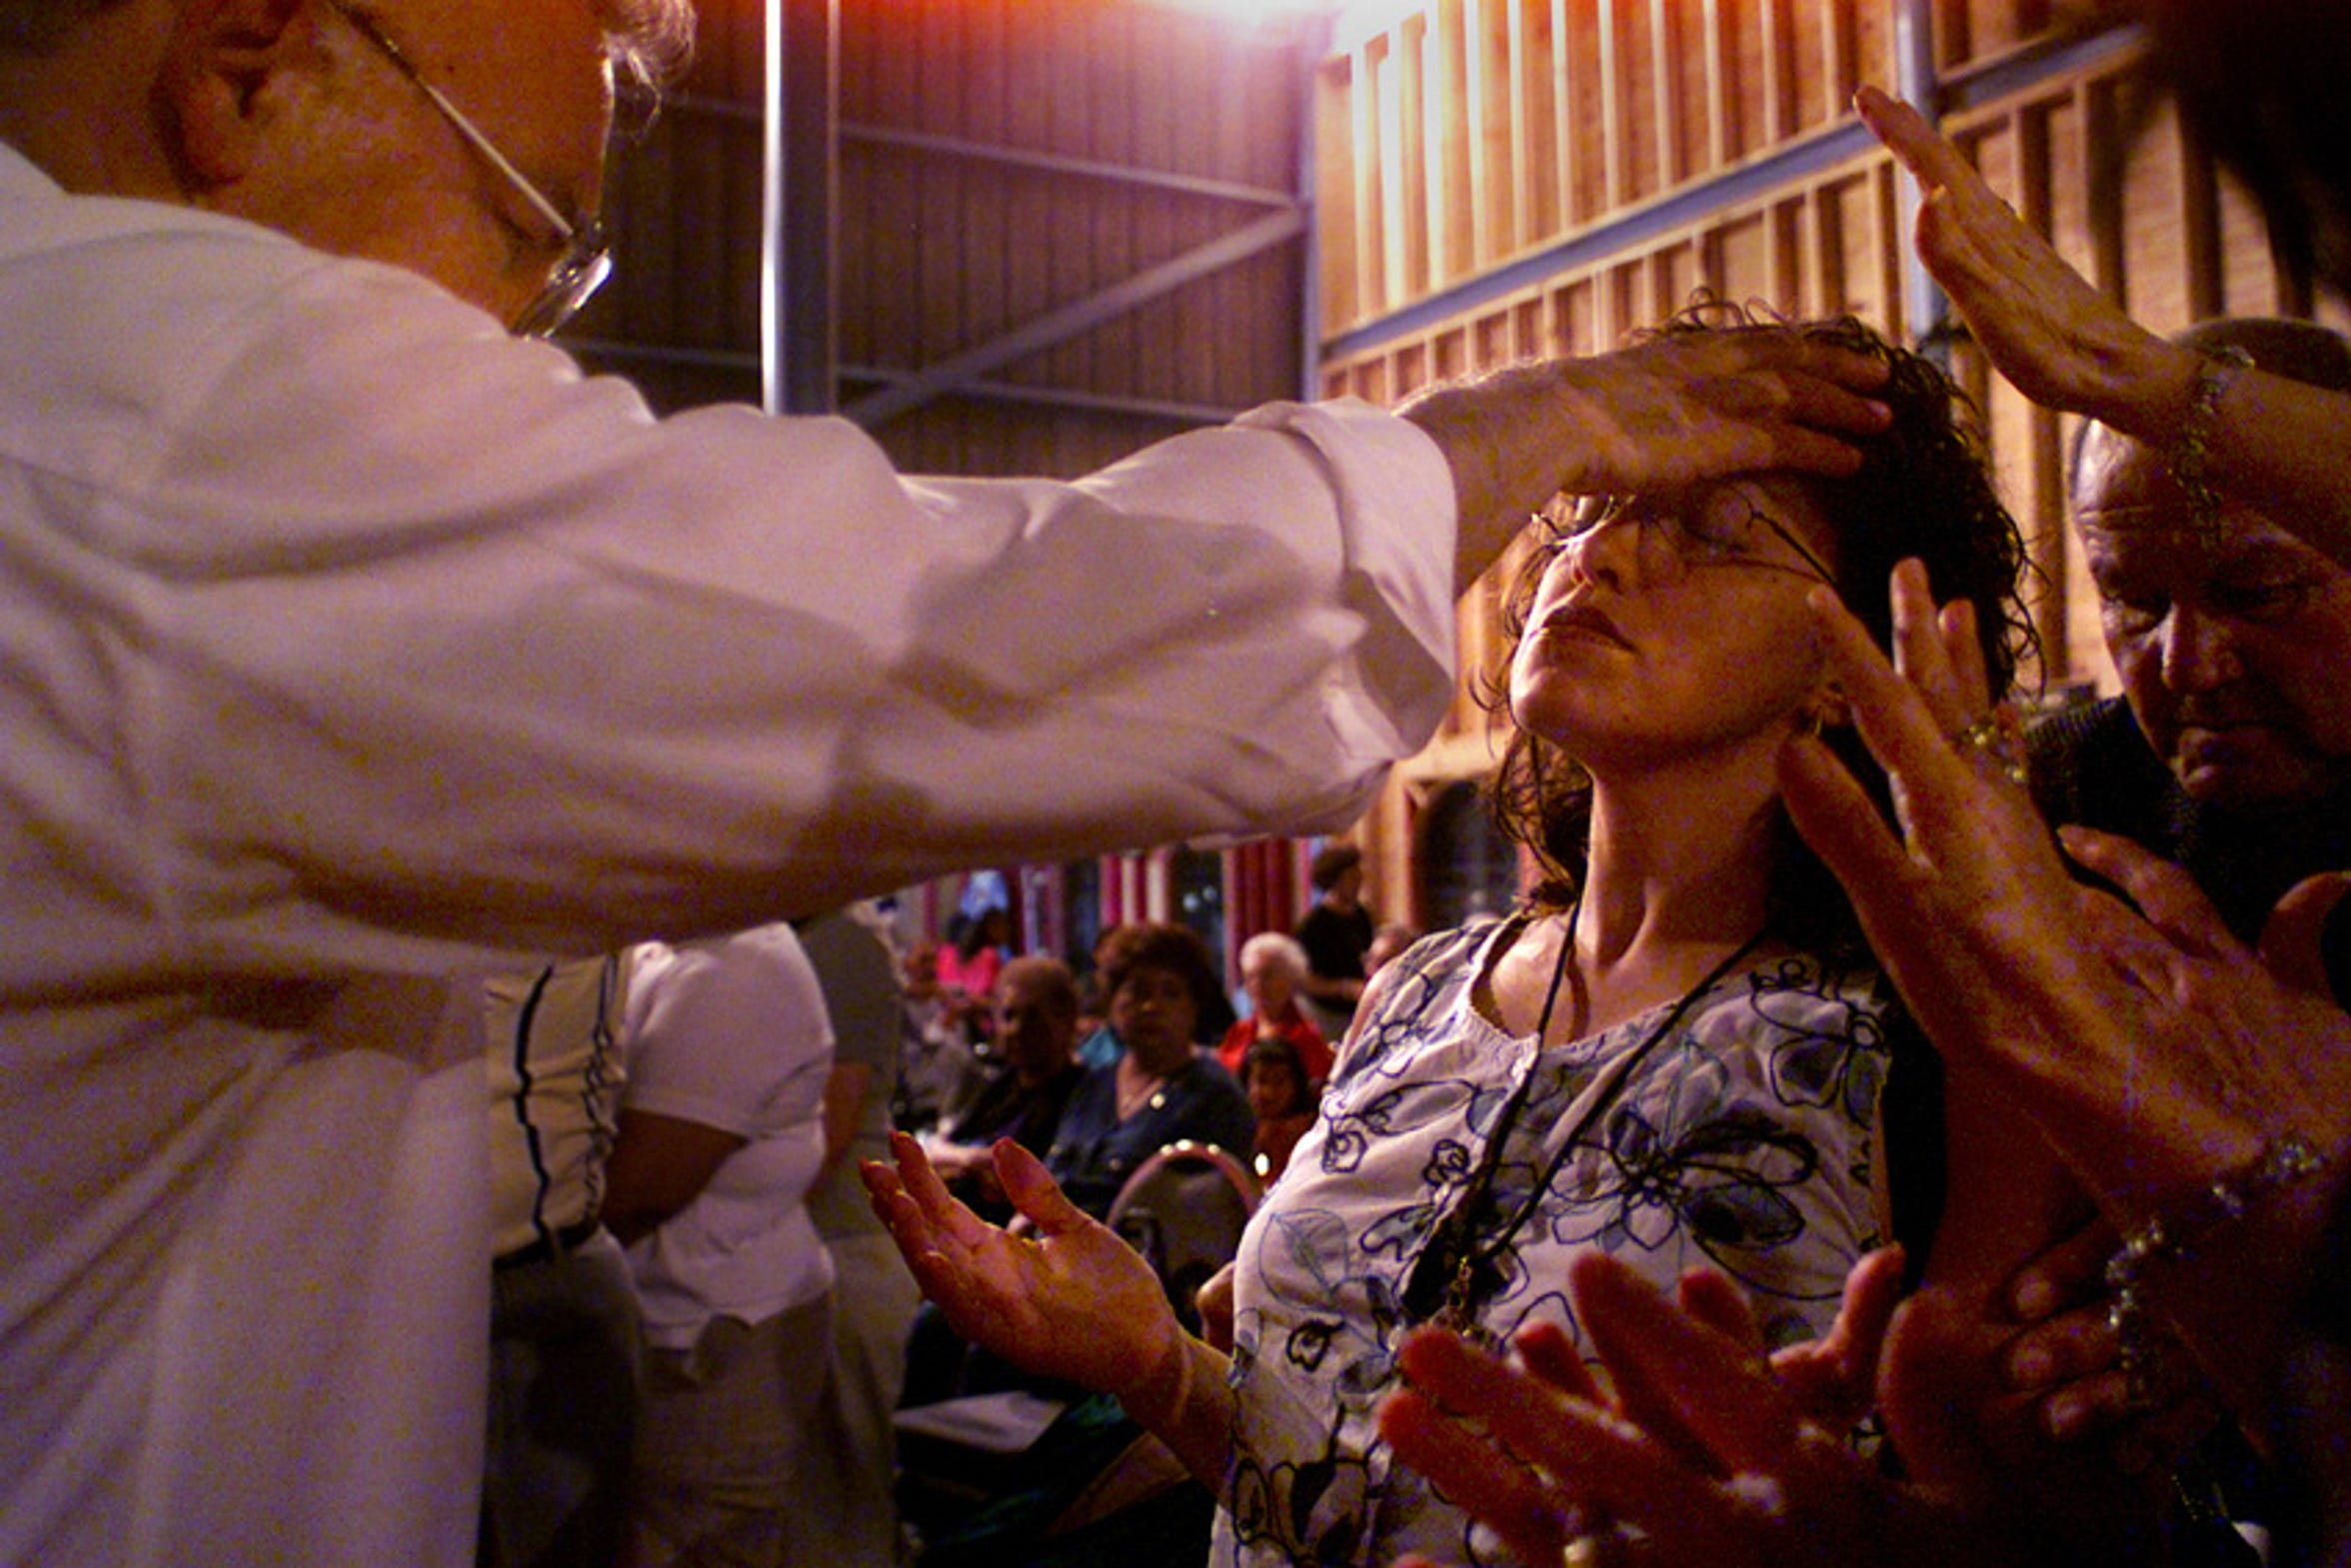 Albert Huerta (left), tries to heal Esperanza Anderson, of Corpus Christi, as others add their support during a revival meeting at Our Father's House, formerly the Texas Sky Amphithearter, on Tuesday, June 25, 2002. Huerta believes the Holy Spirit and God speak through him, and with their grace he can heal people who are physically sick.